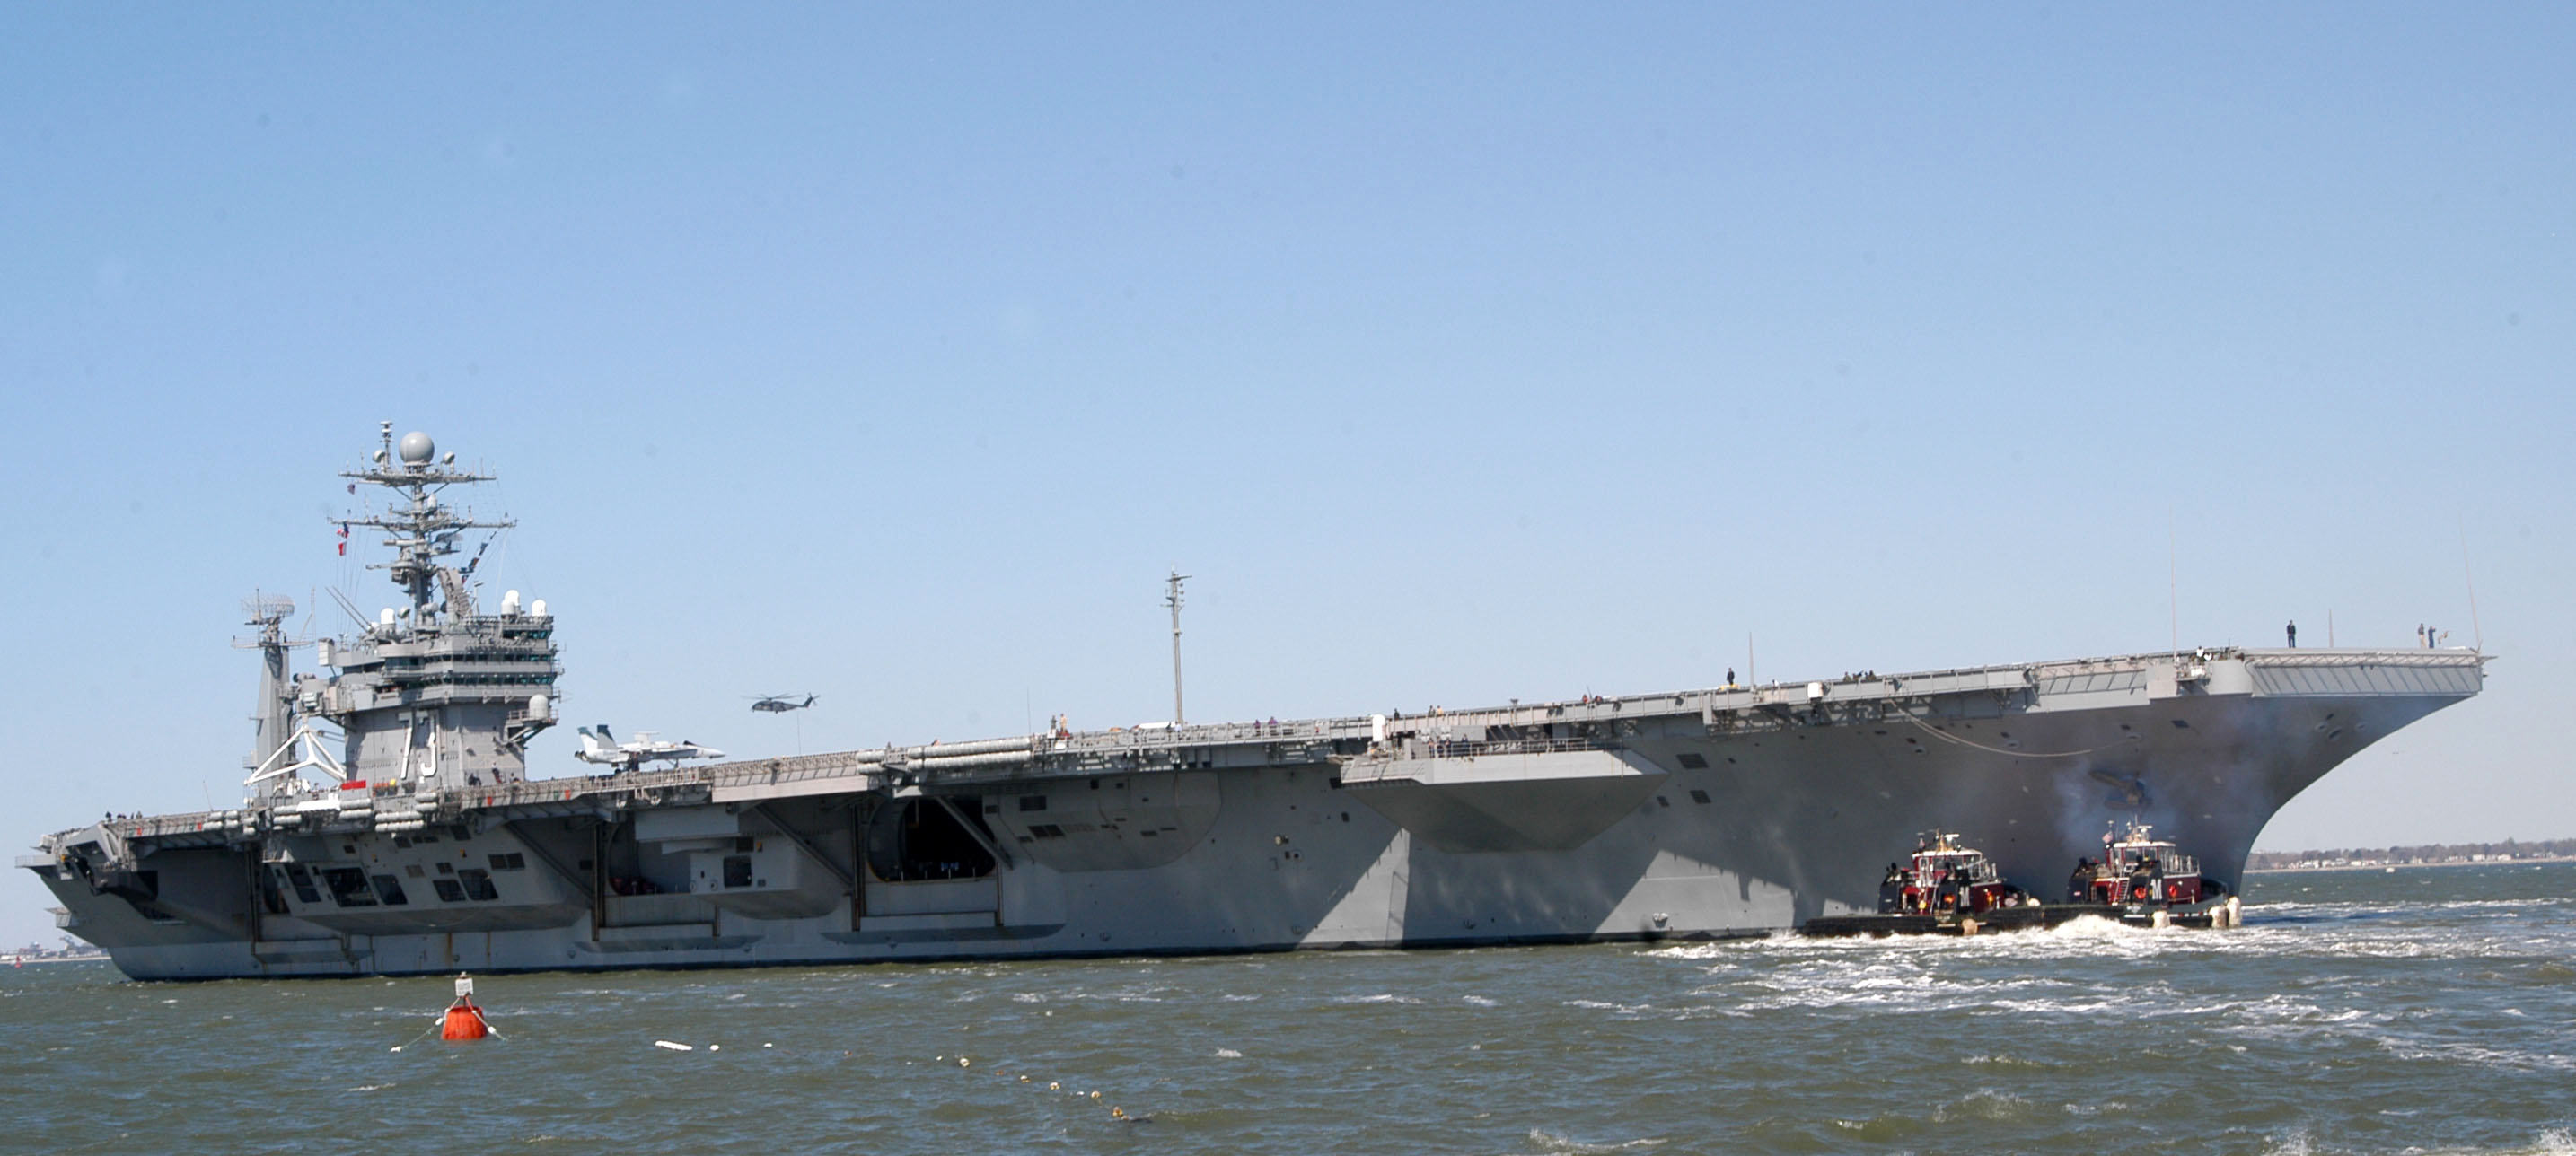 Uss george washington aircraft carrier hd walls find wallpapers